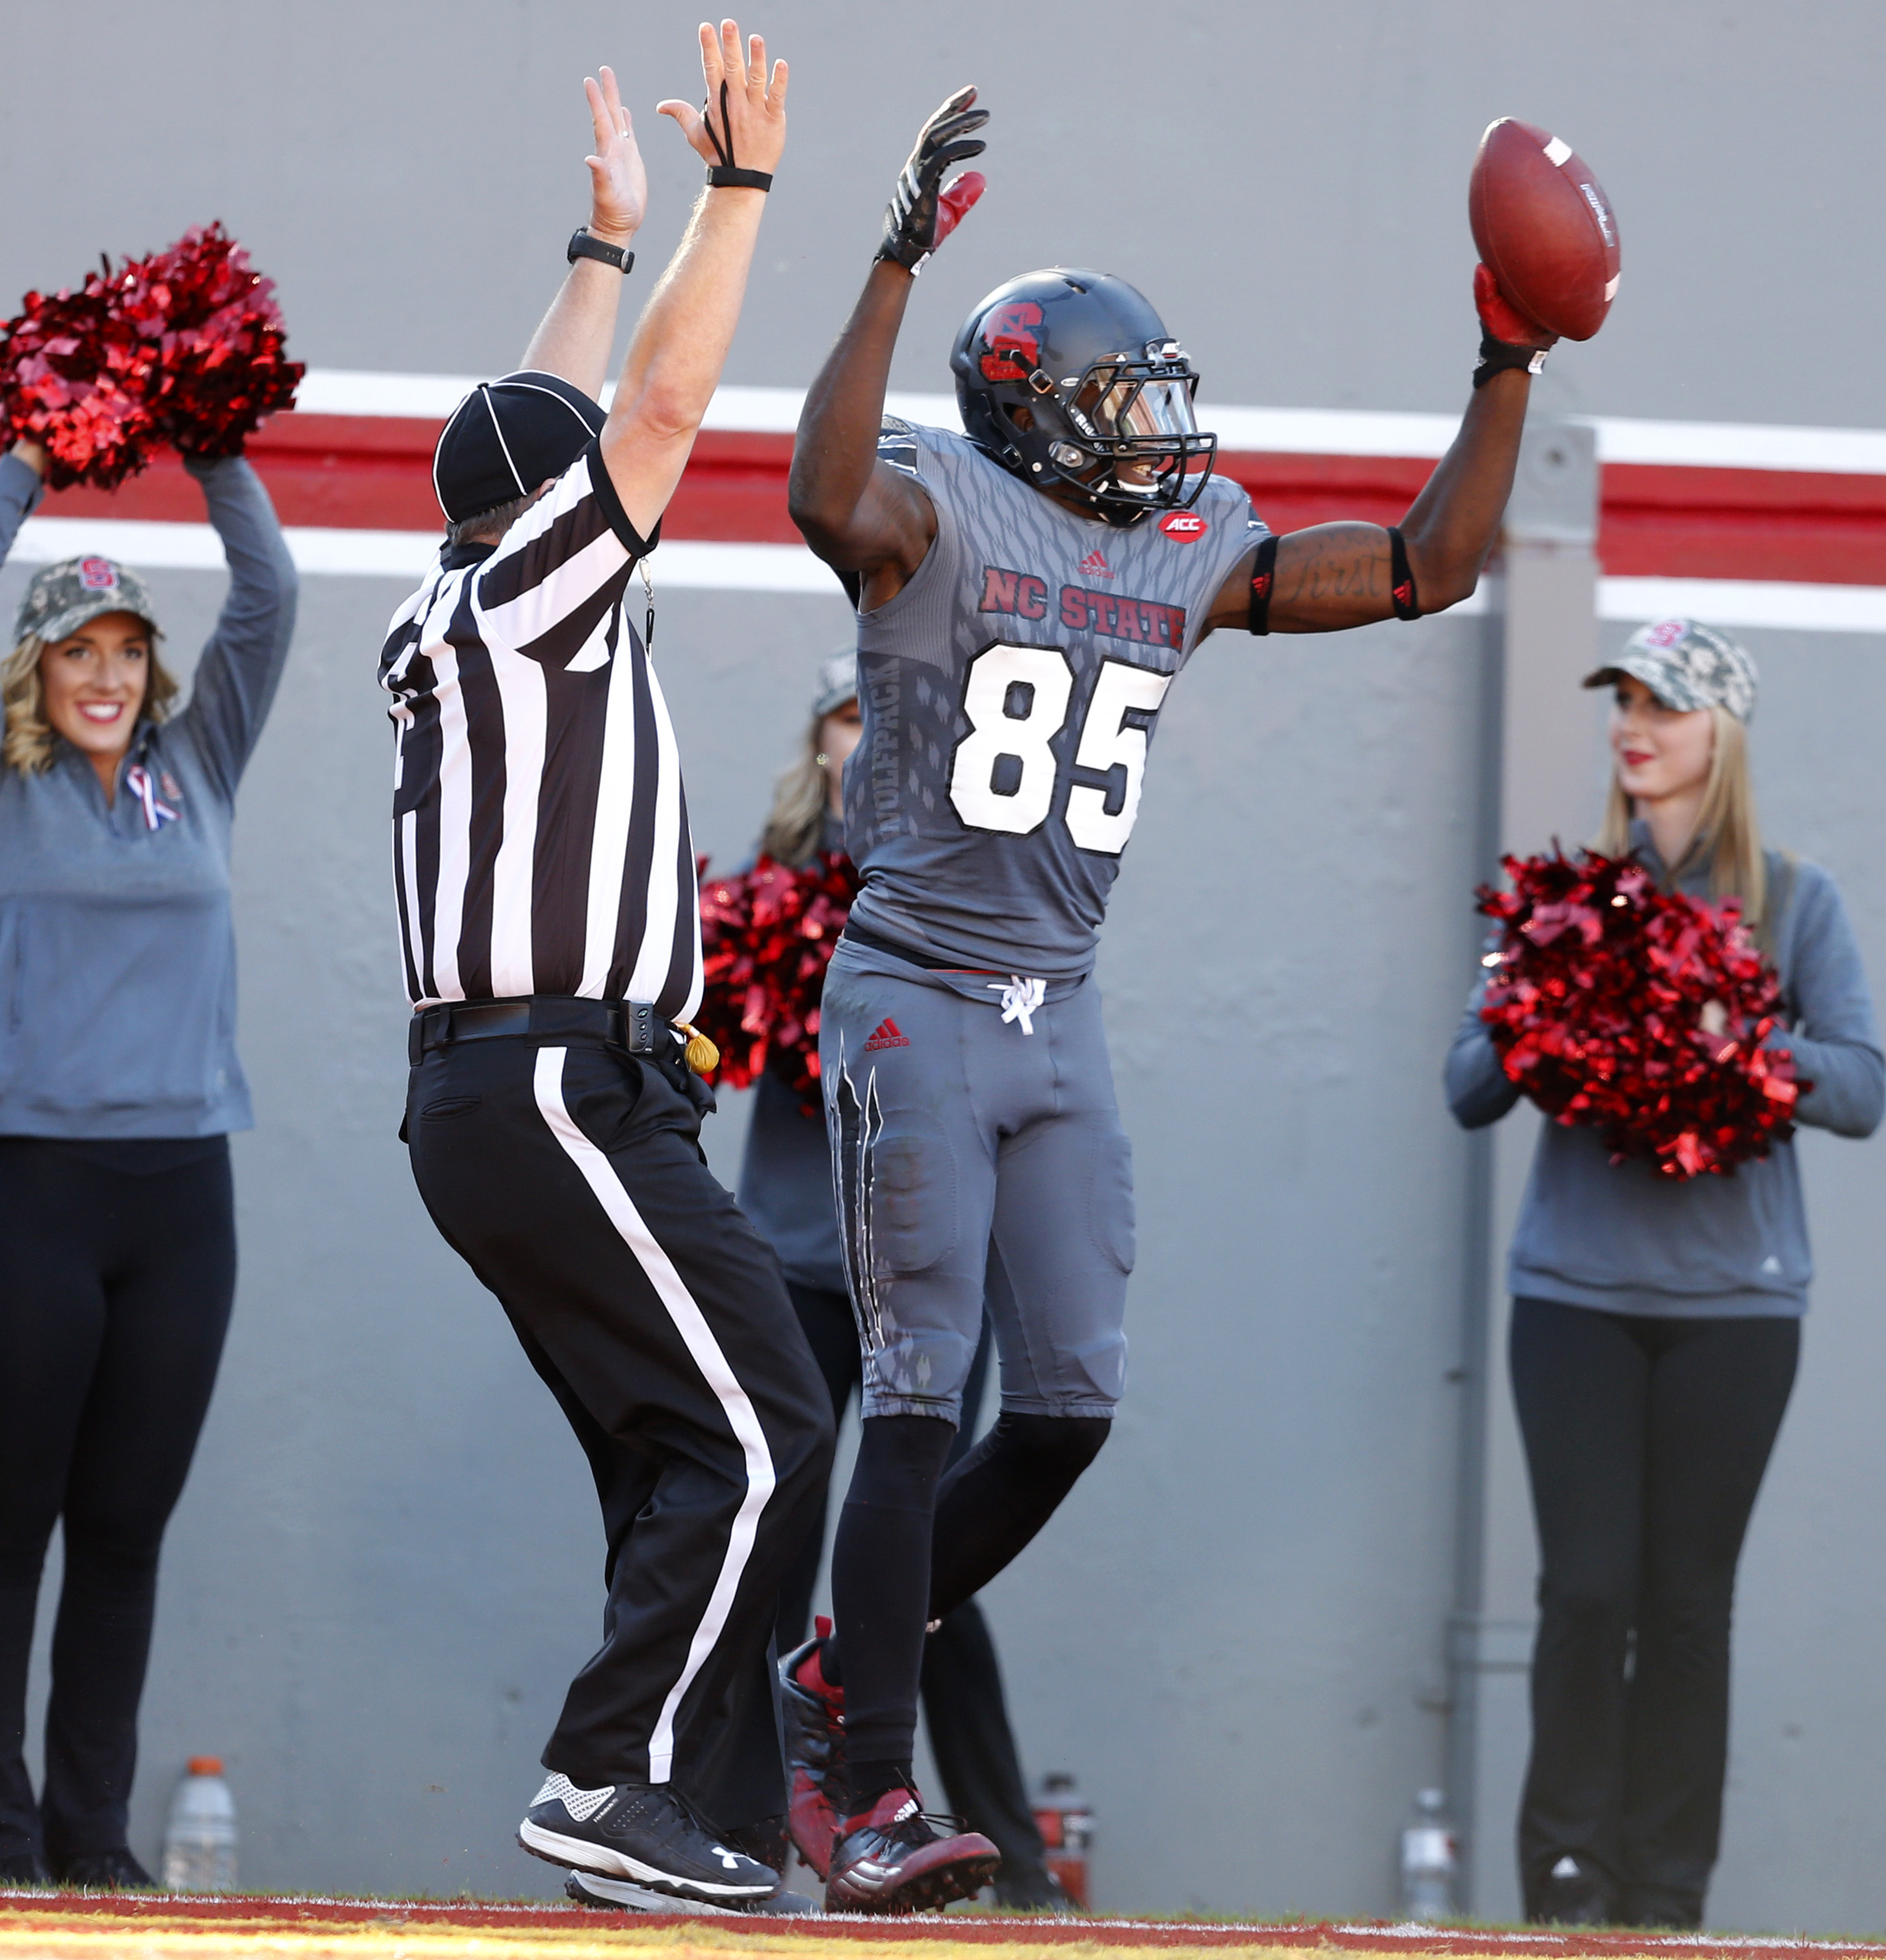 North Carolina State wide receiver Jumichael Ramos (85) celebrates a 5-yard touchdown reception during the second half of an NCAA college football game against Syracuse in Raleigh, N.C., Saturday, Nov. 21, 2015. (Ethan Hyman/The News & Observer via AP) MA